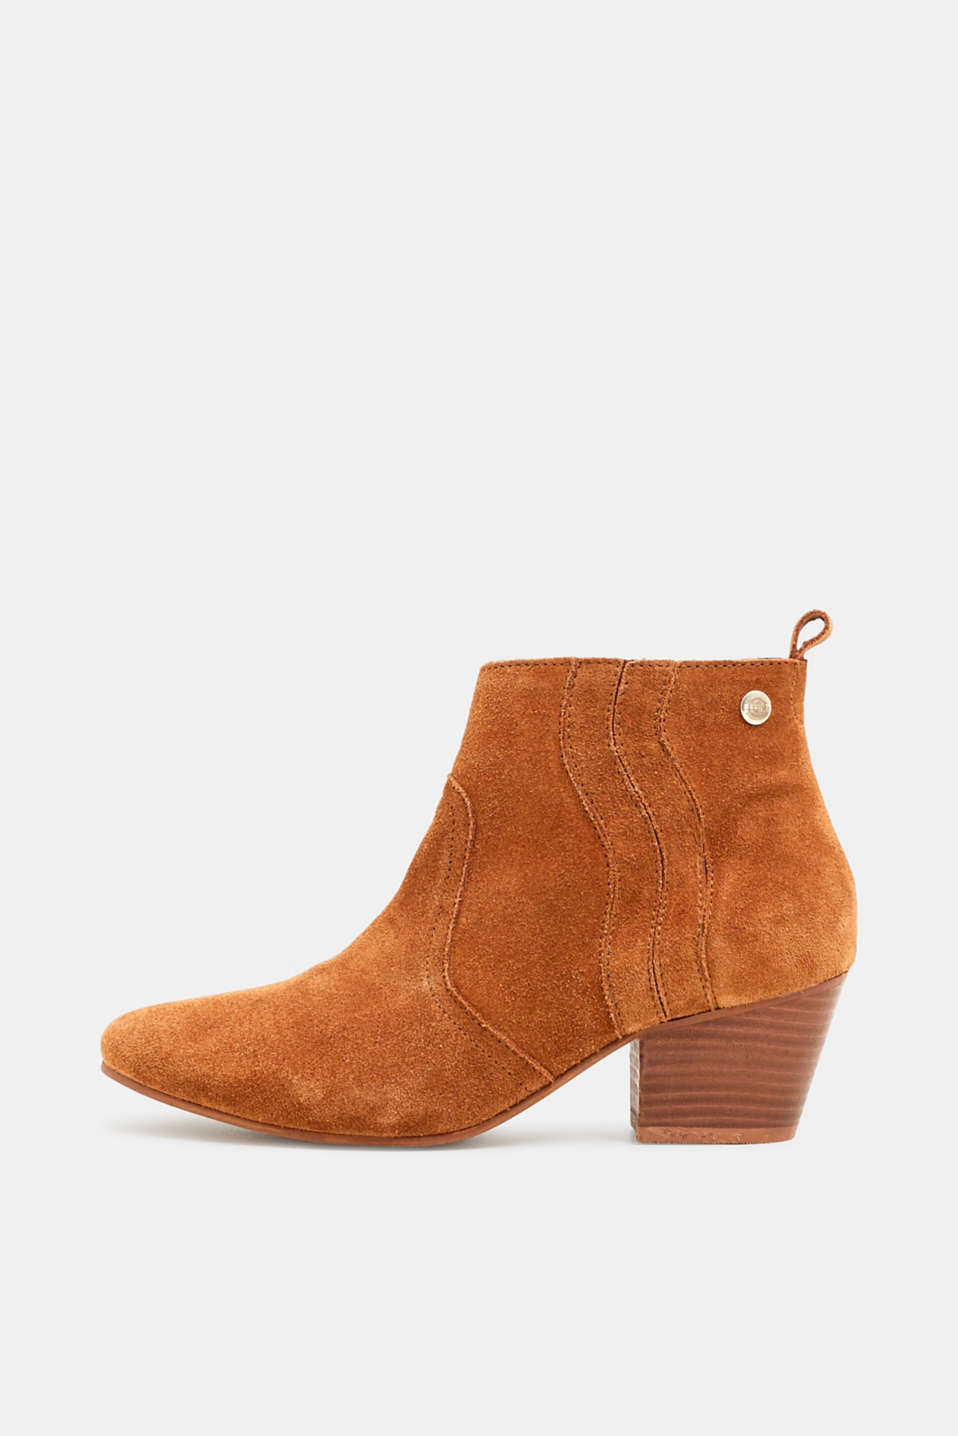 Esprit - Suede ankle boots with decorative stitching